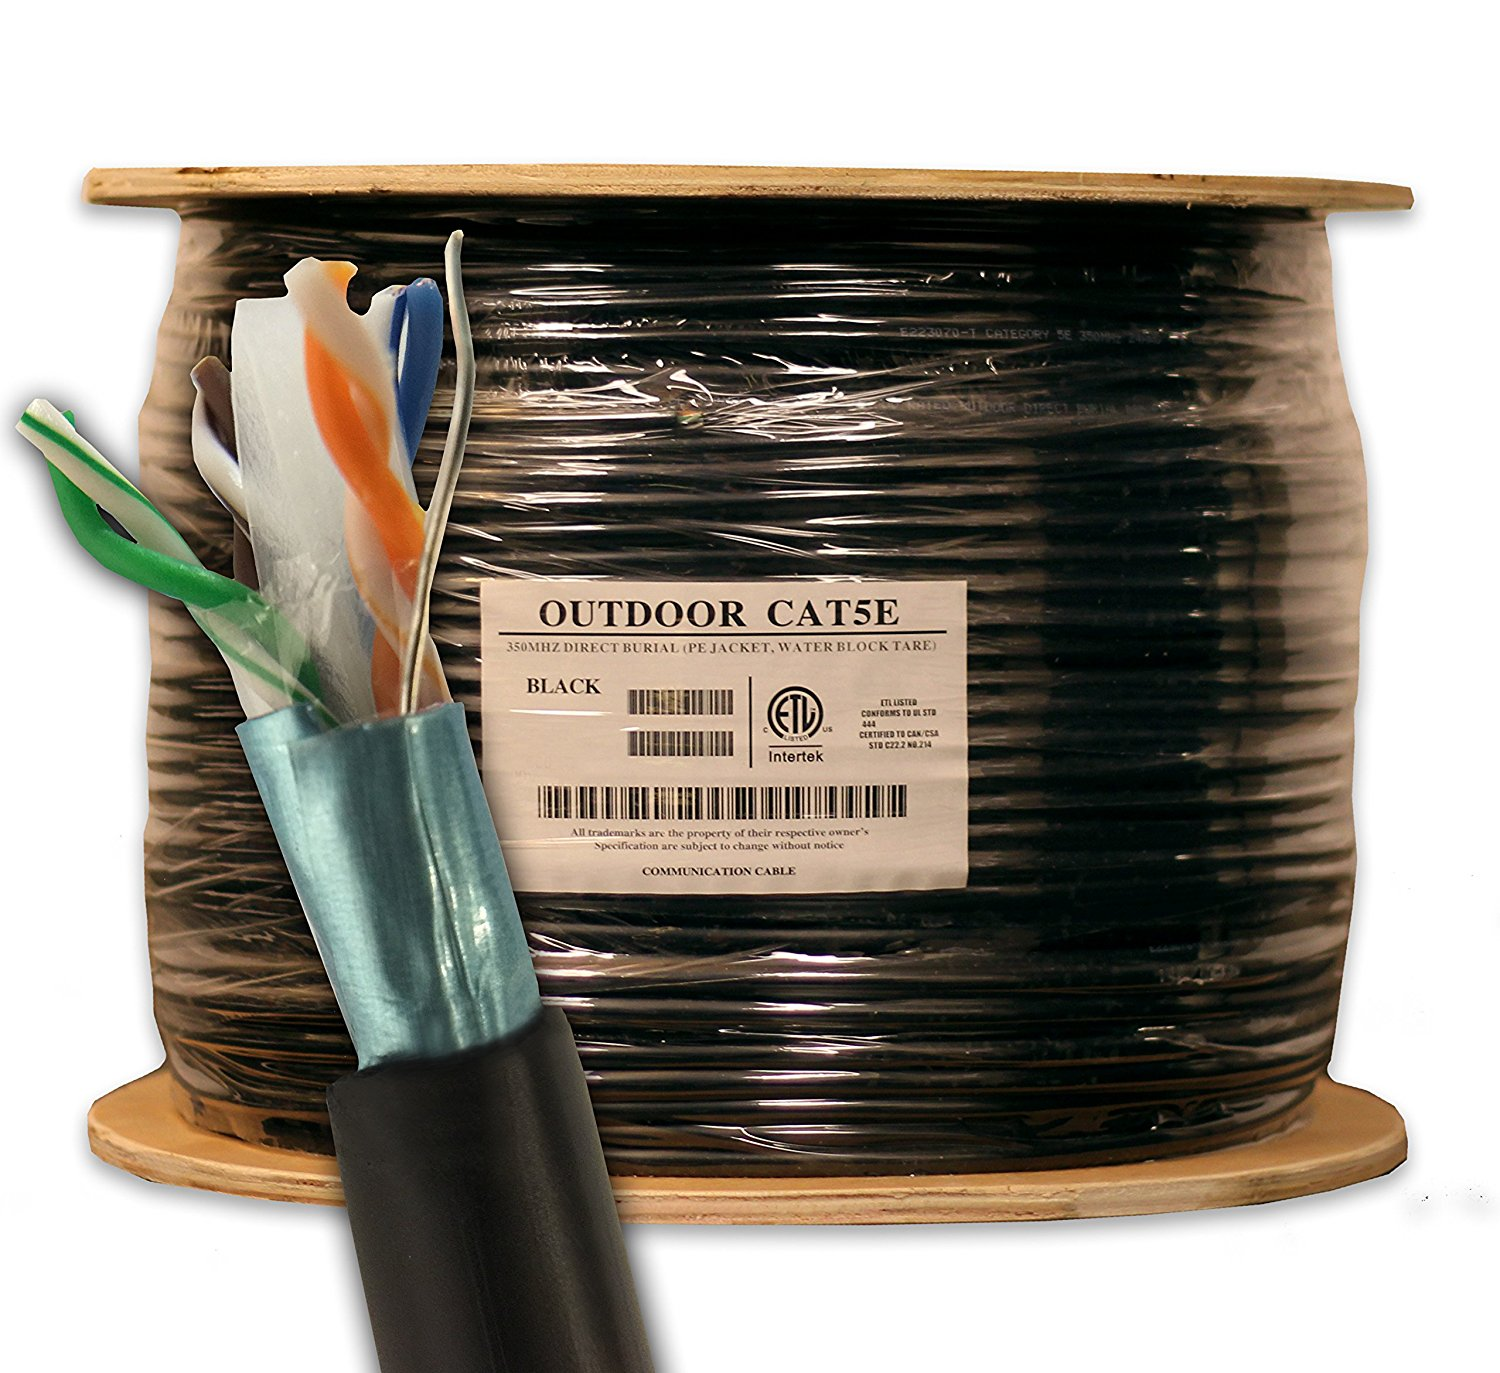 Cheap Outdoor Cat5e Shielded Find Deals On Wiring Ftp Cat5 Solid Cable China Get Quotations 1000ft Waterproof Direct Burial Rated Cmx